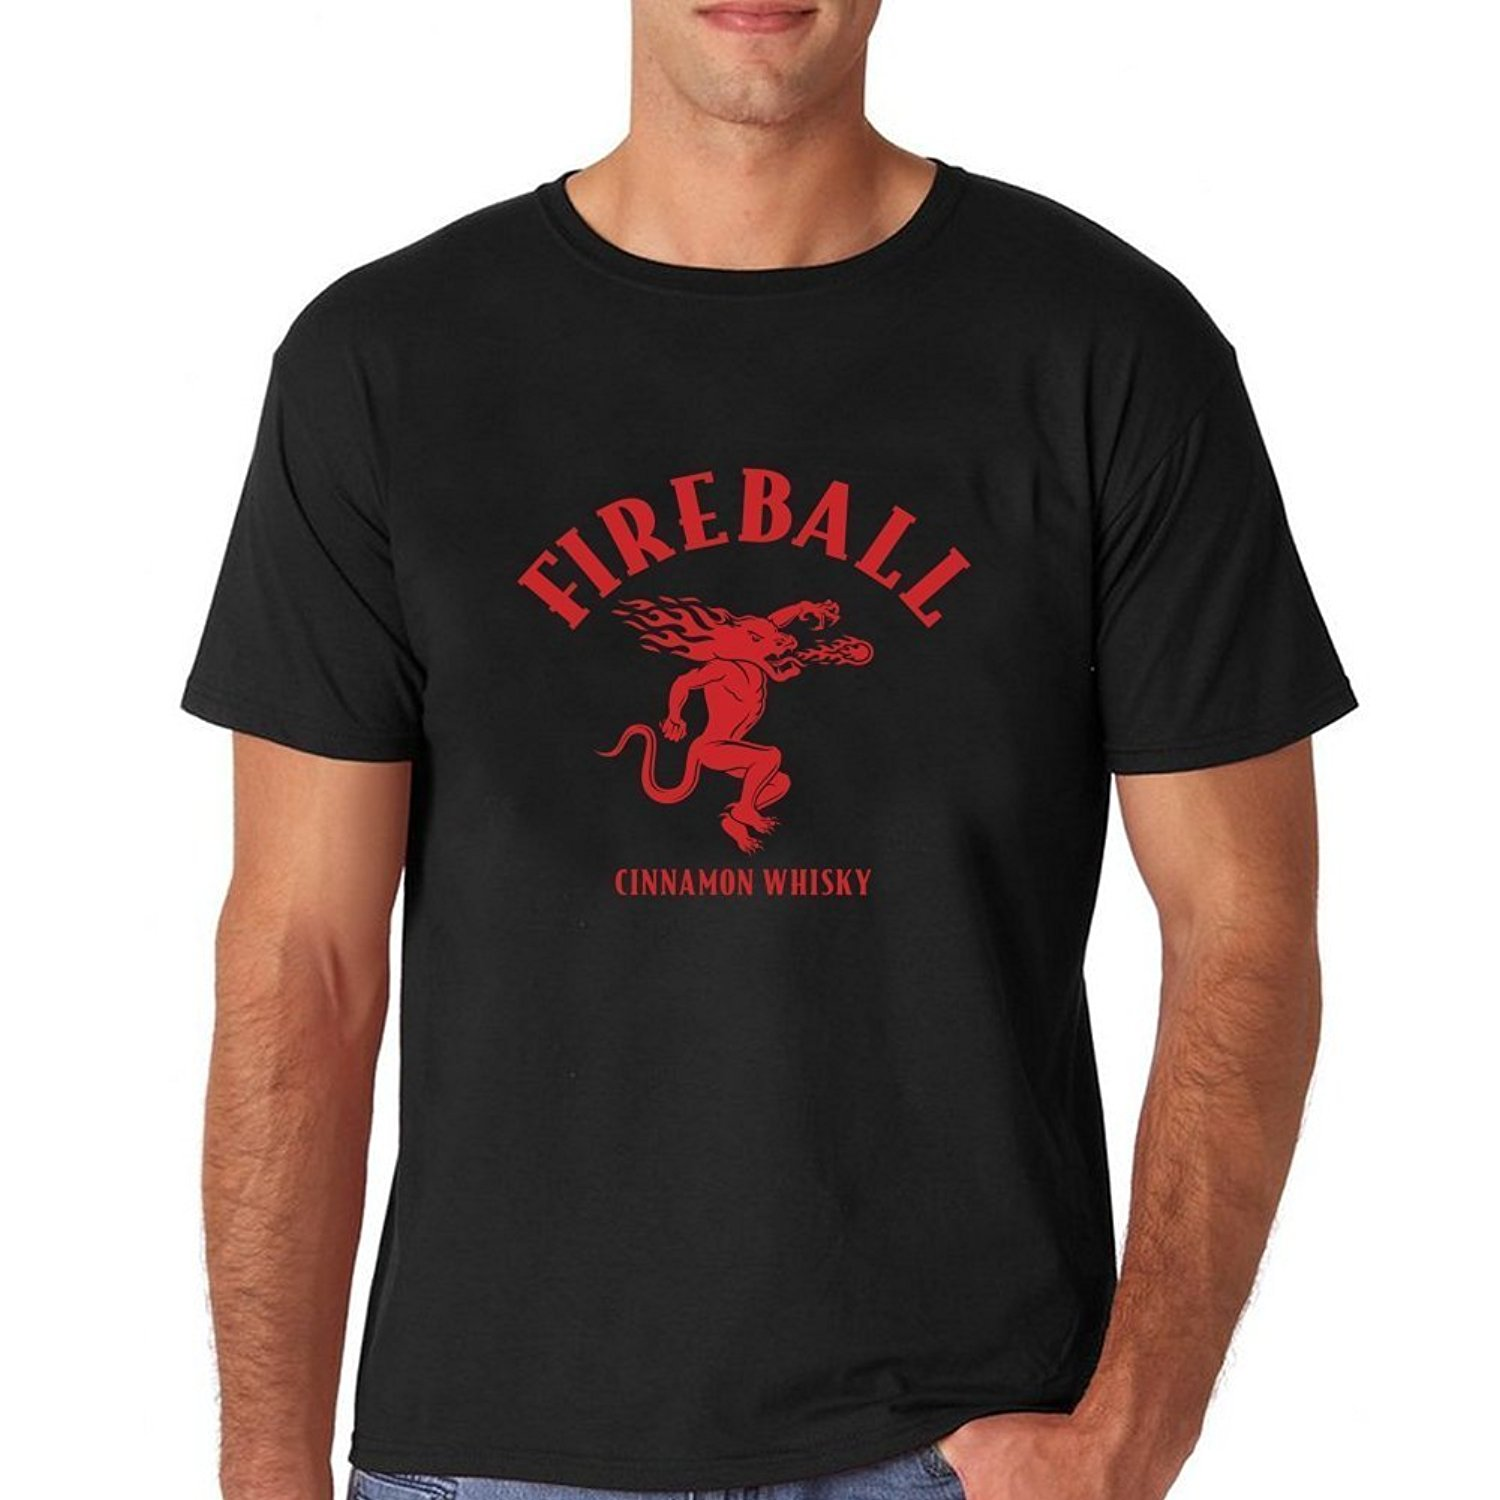 Gildan Tshirt Brand Male Short Sleeve Cool Casual Sleeves T-Shirt Fashion Fireball Whiskey Logo Short shirt for mens